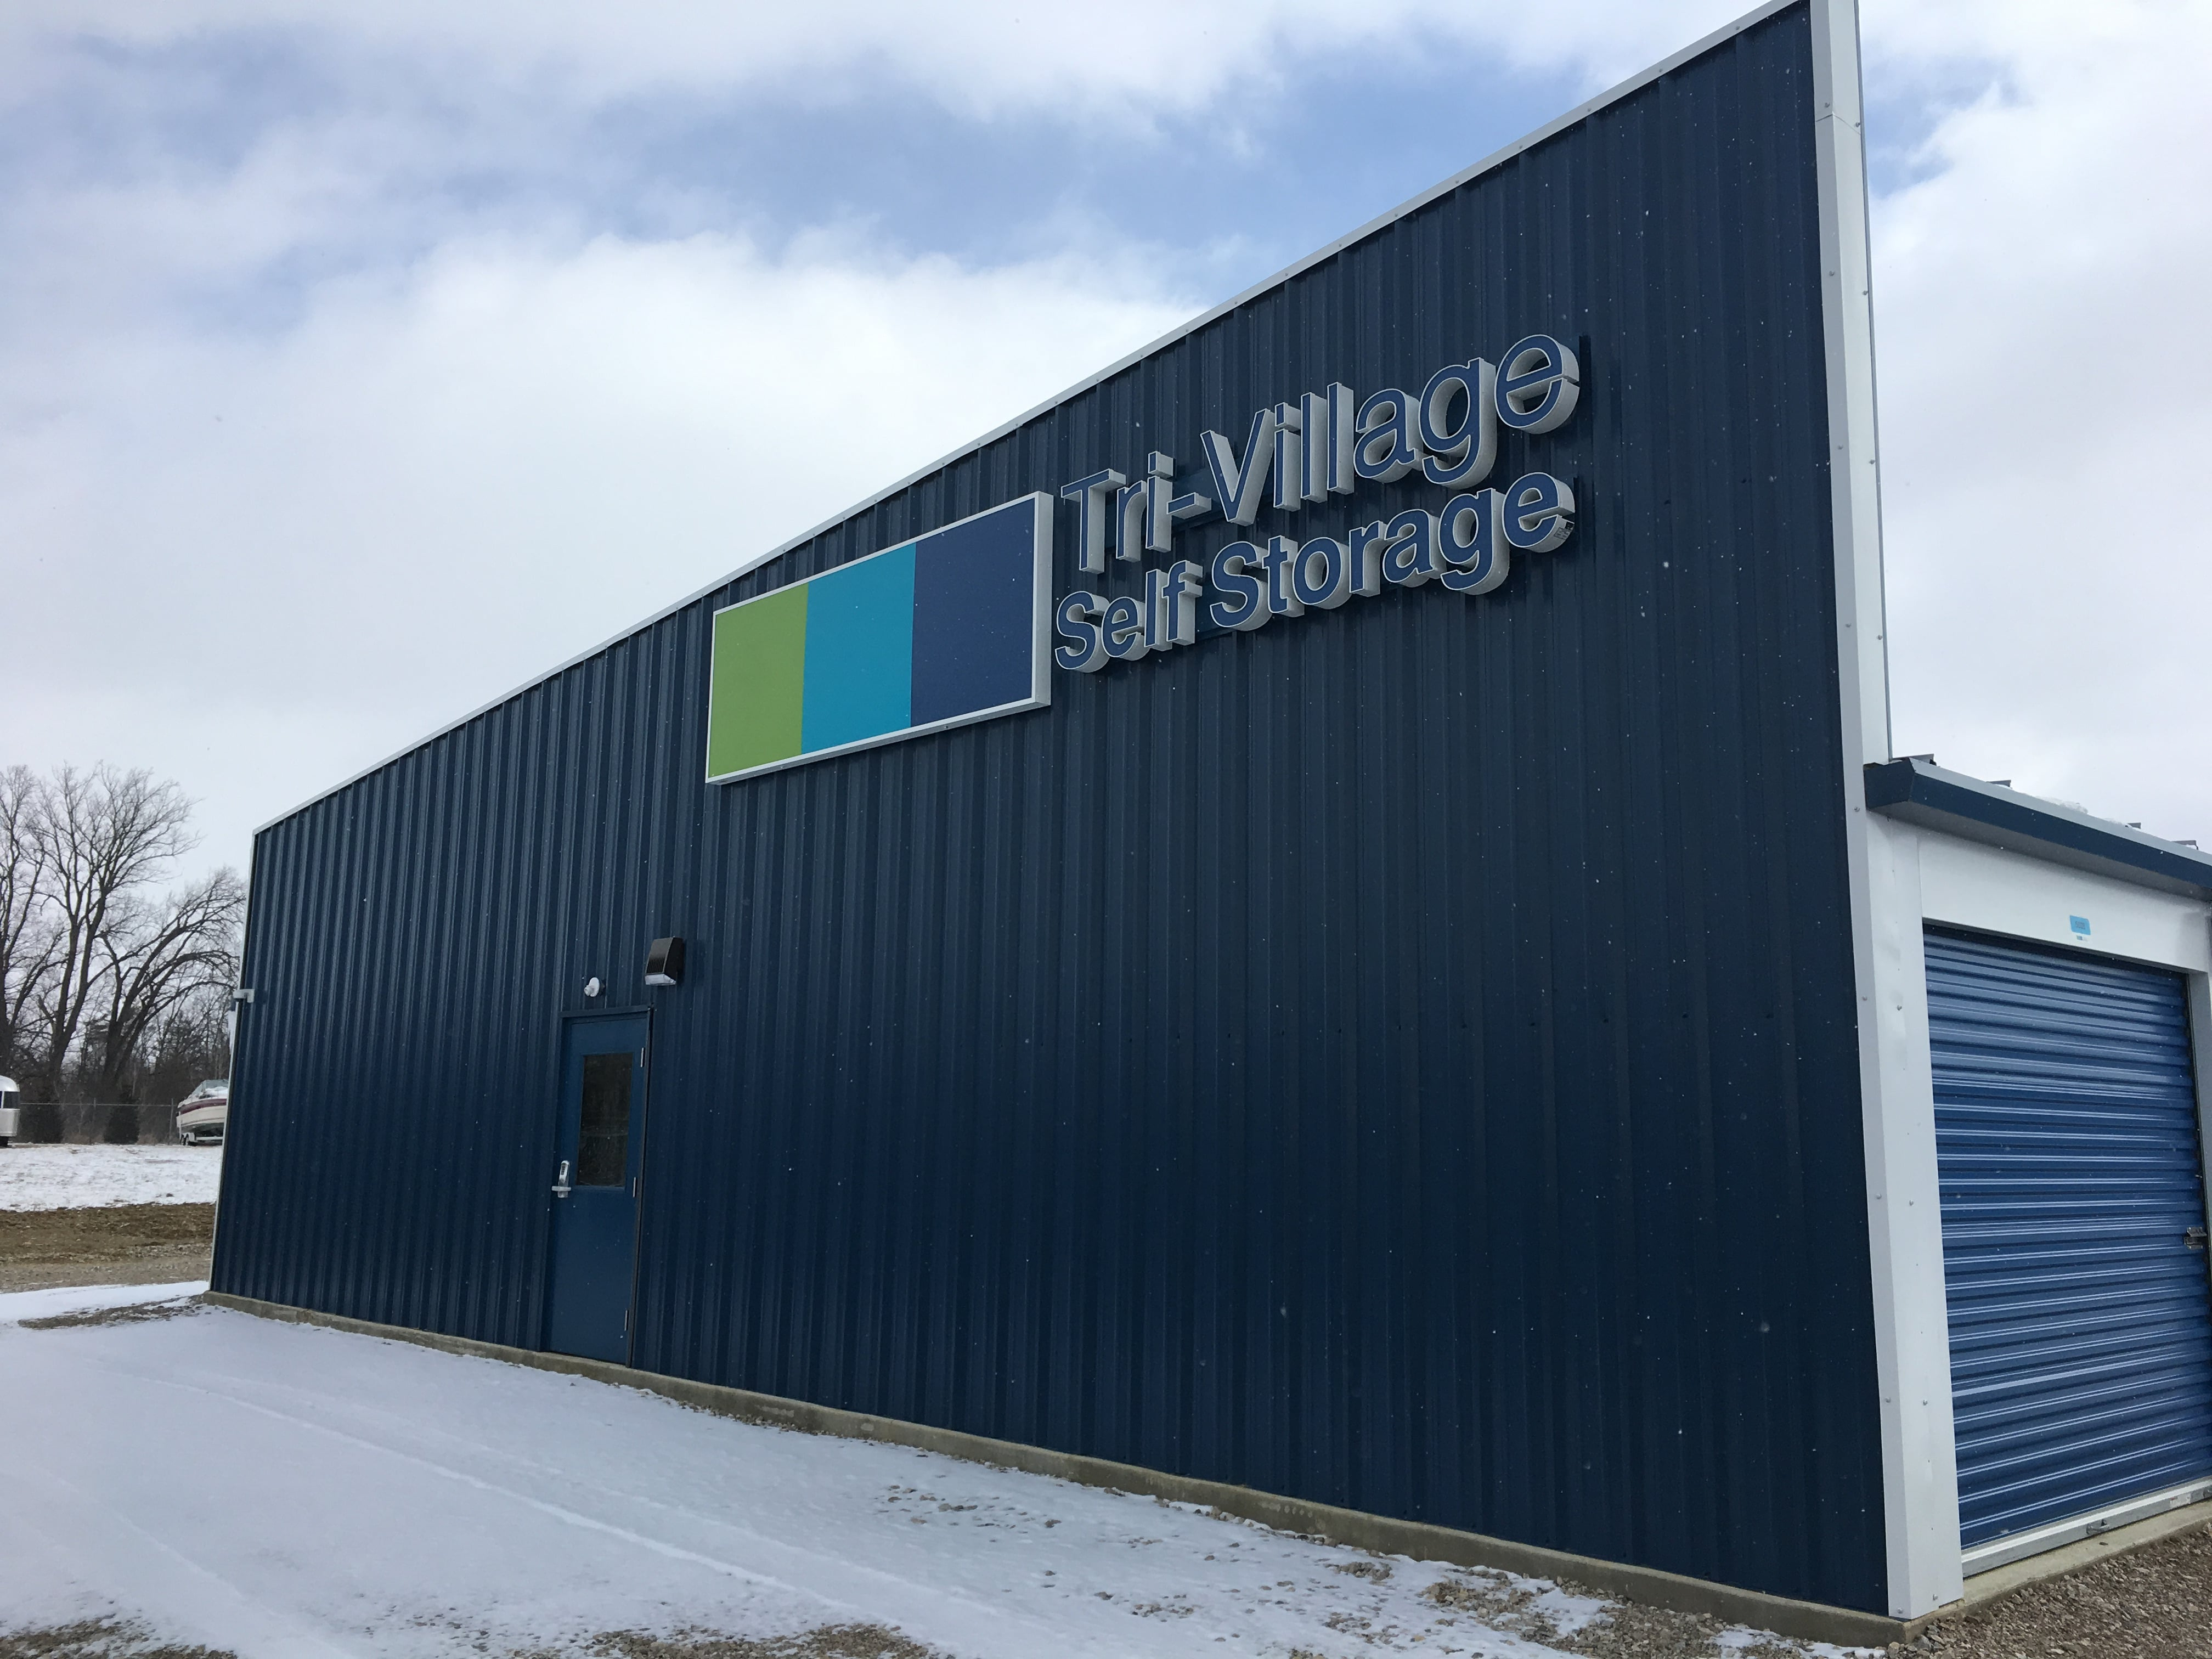 Tri-Village Self Storage image 0